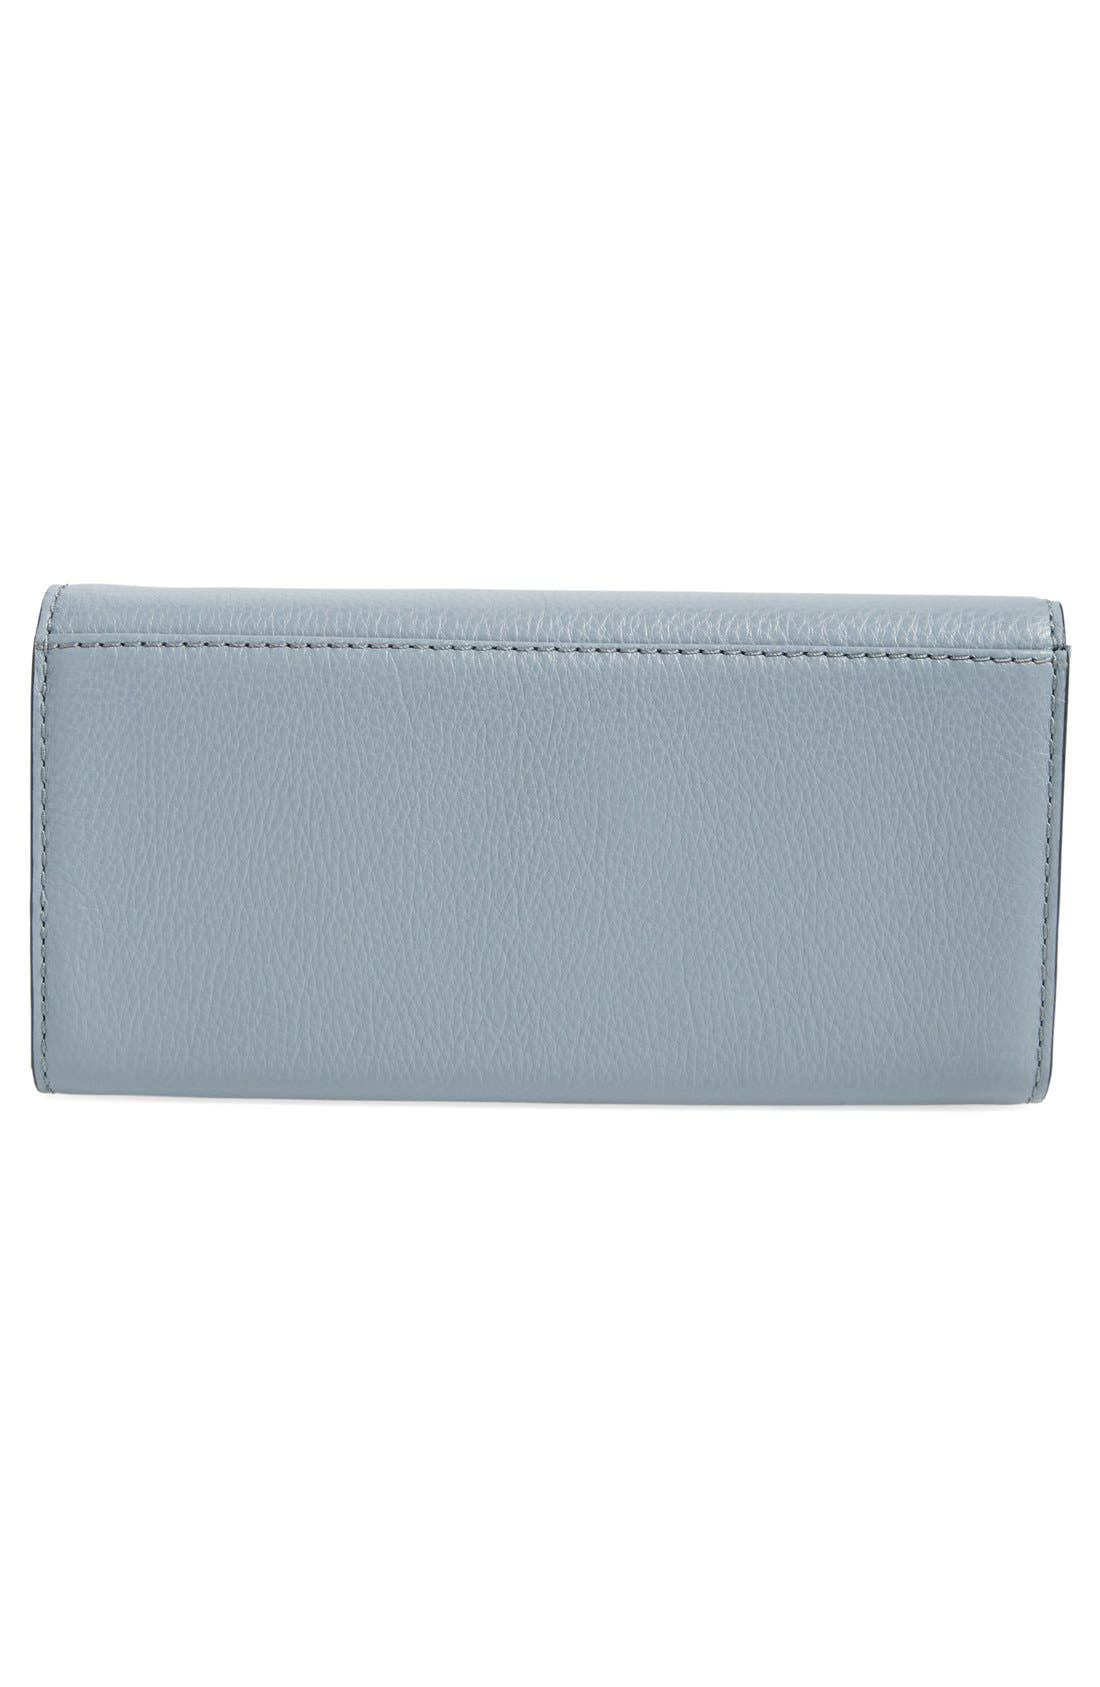 Alternate Image 3  - MARC BY MARC JACOBS Trifold Flap Wallet